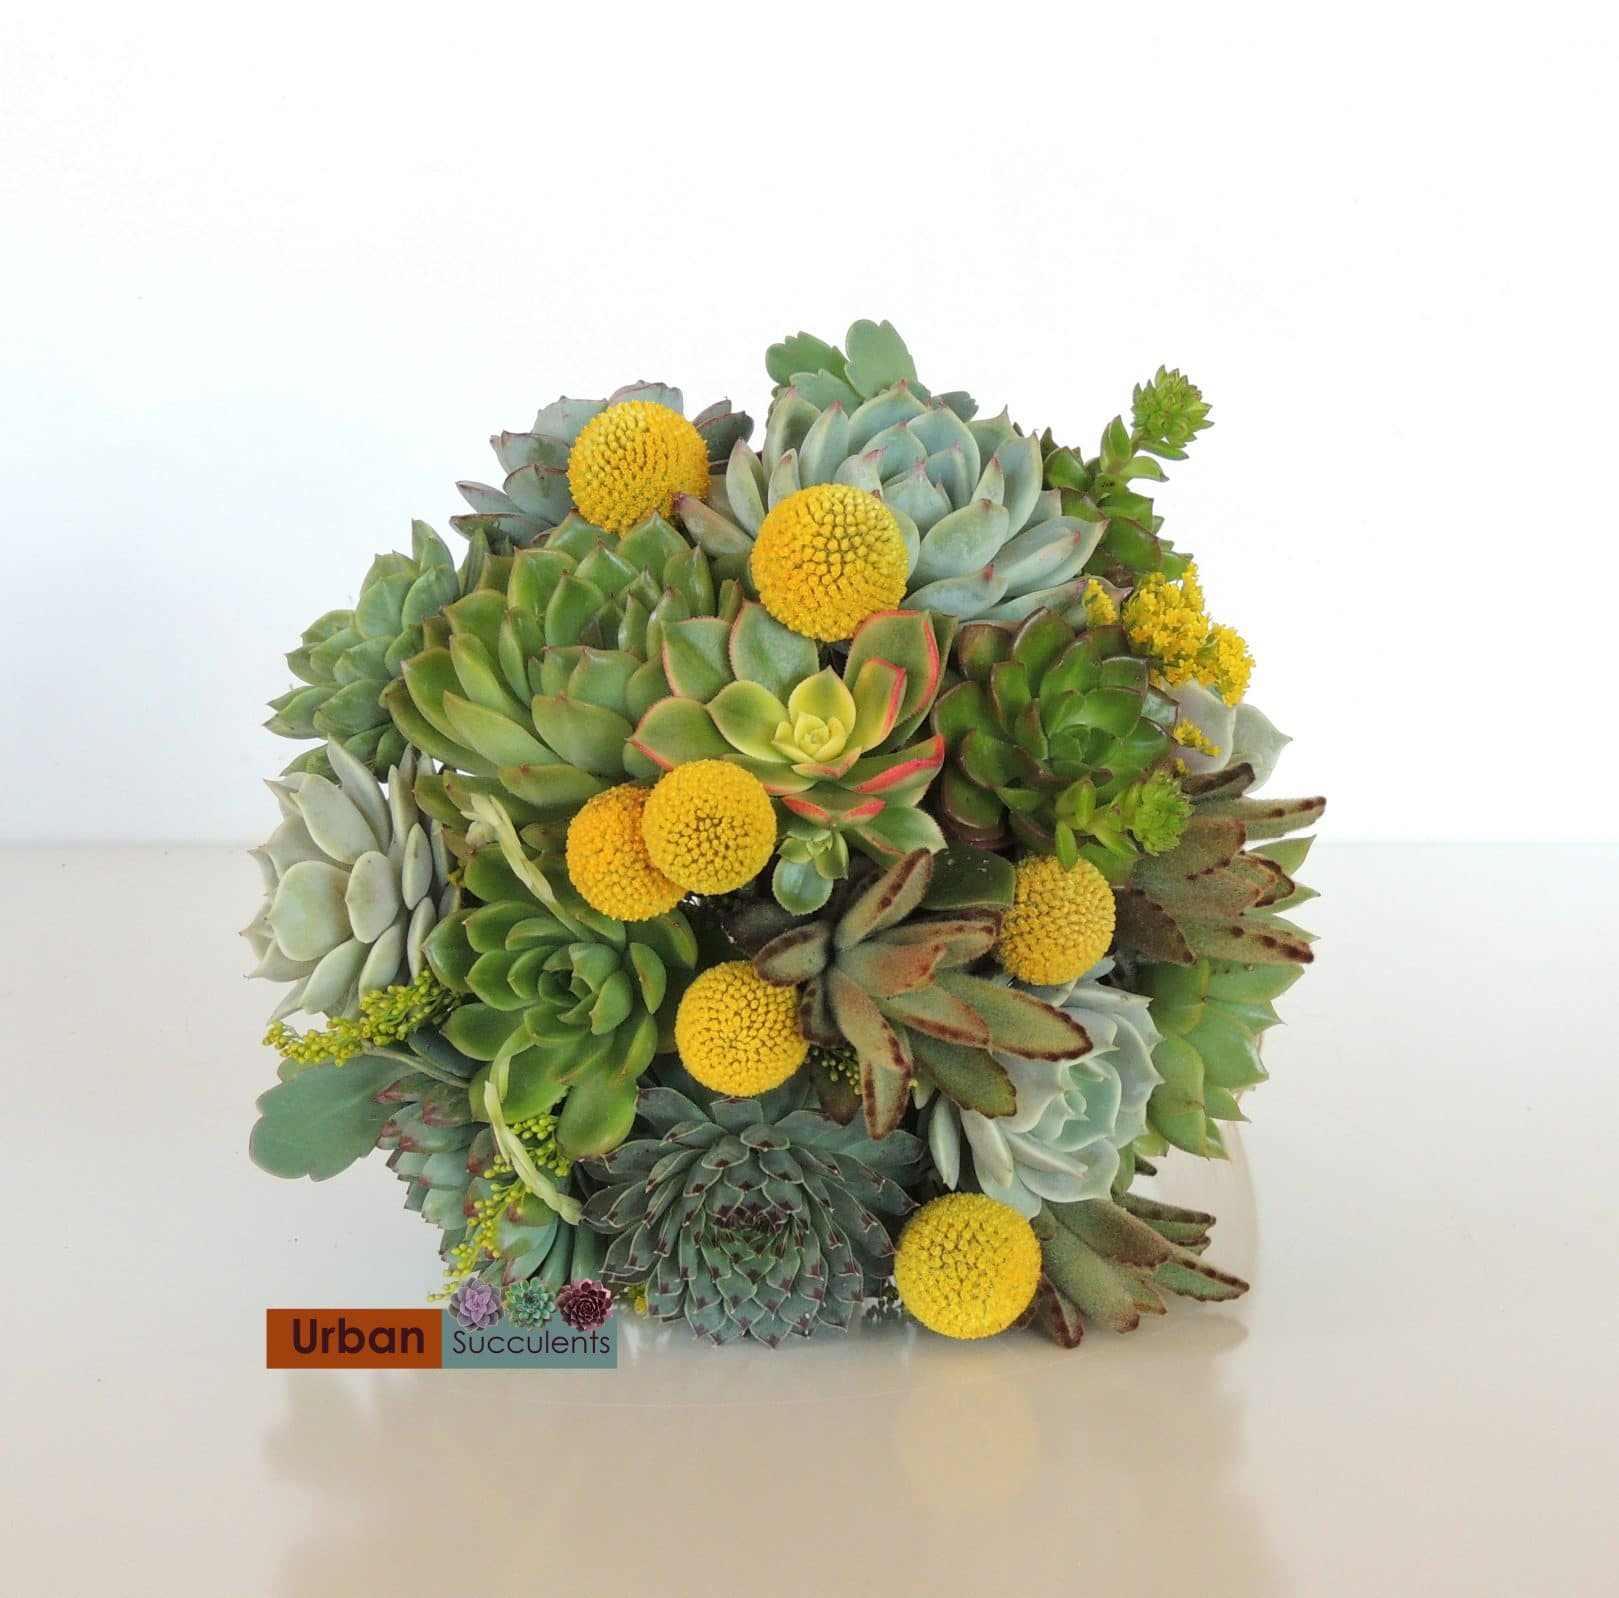 Green and Yellow Succulent bouquet